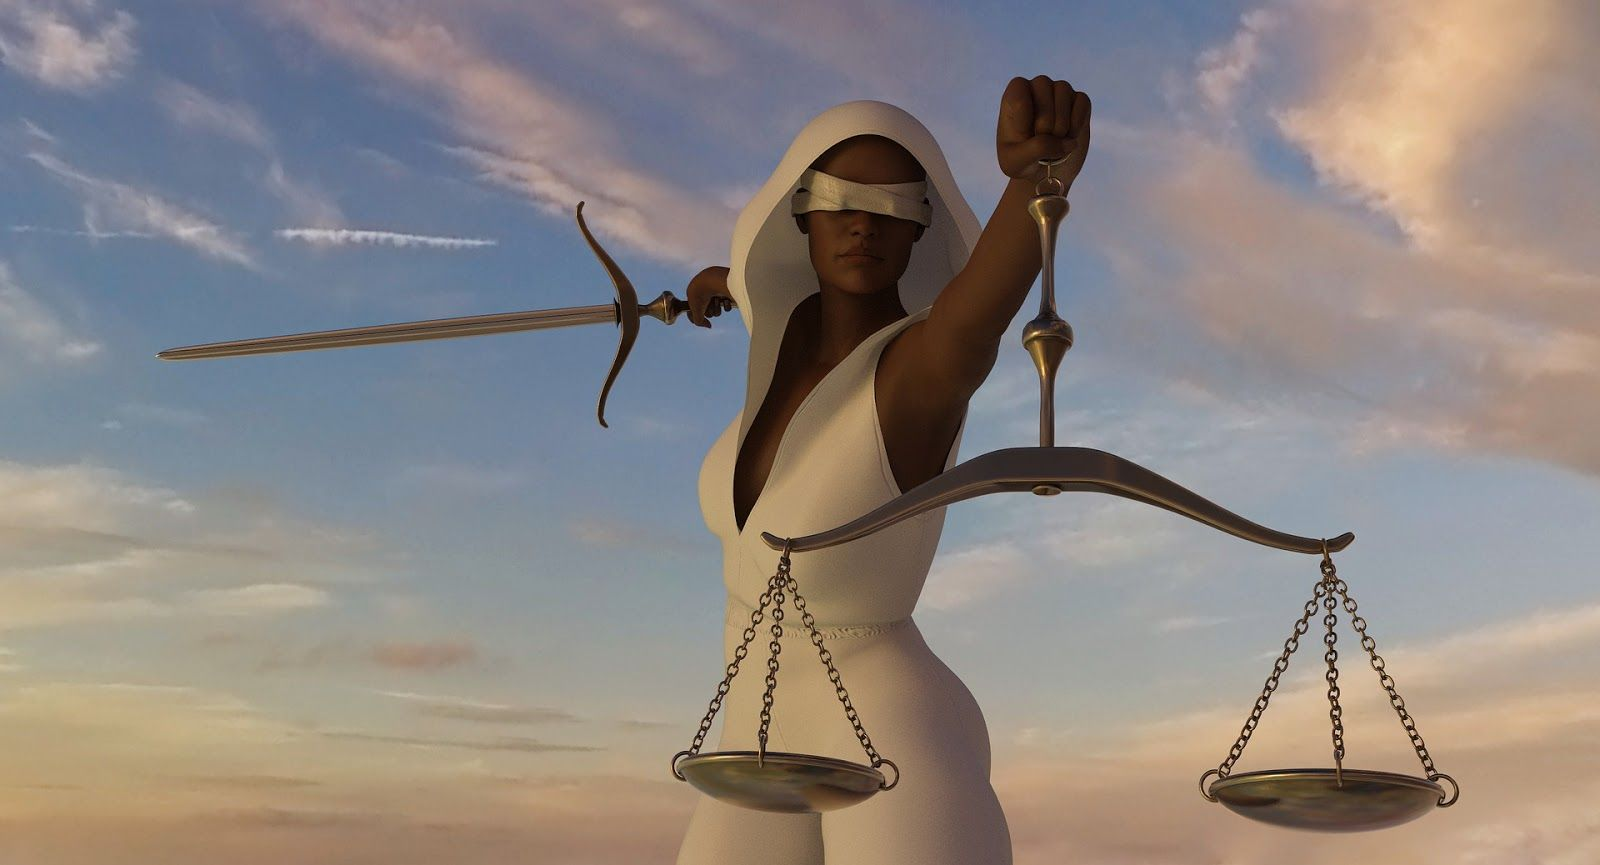 Justitia ex Machina: The Case for Automating Morals